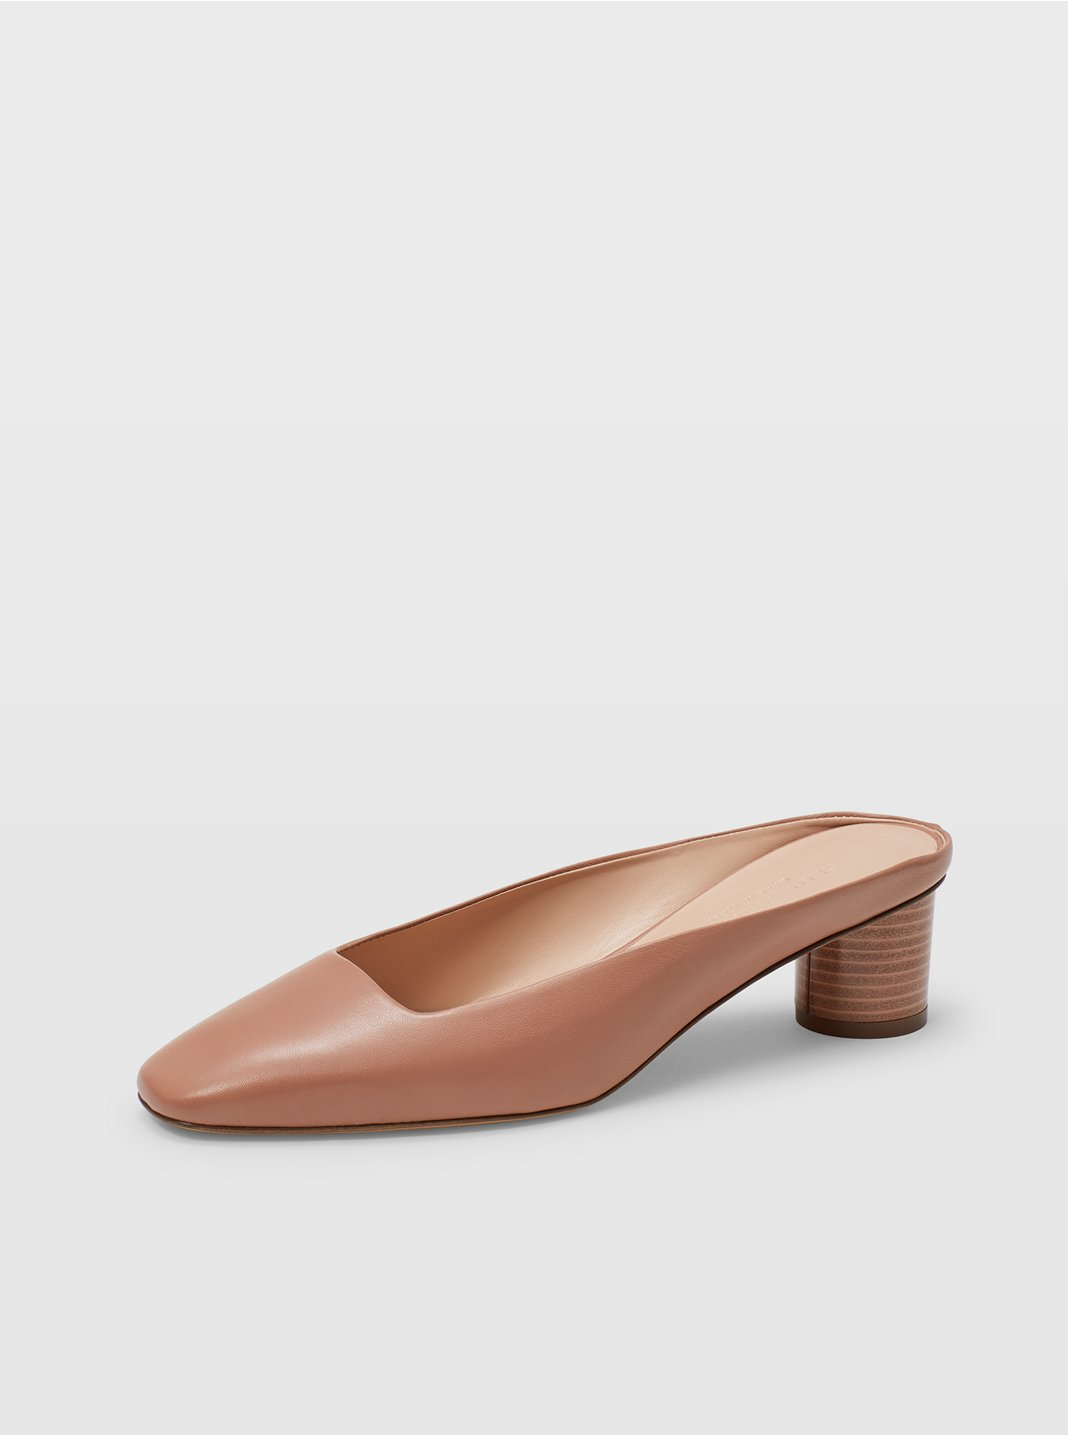 Aveena Leather Mule